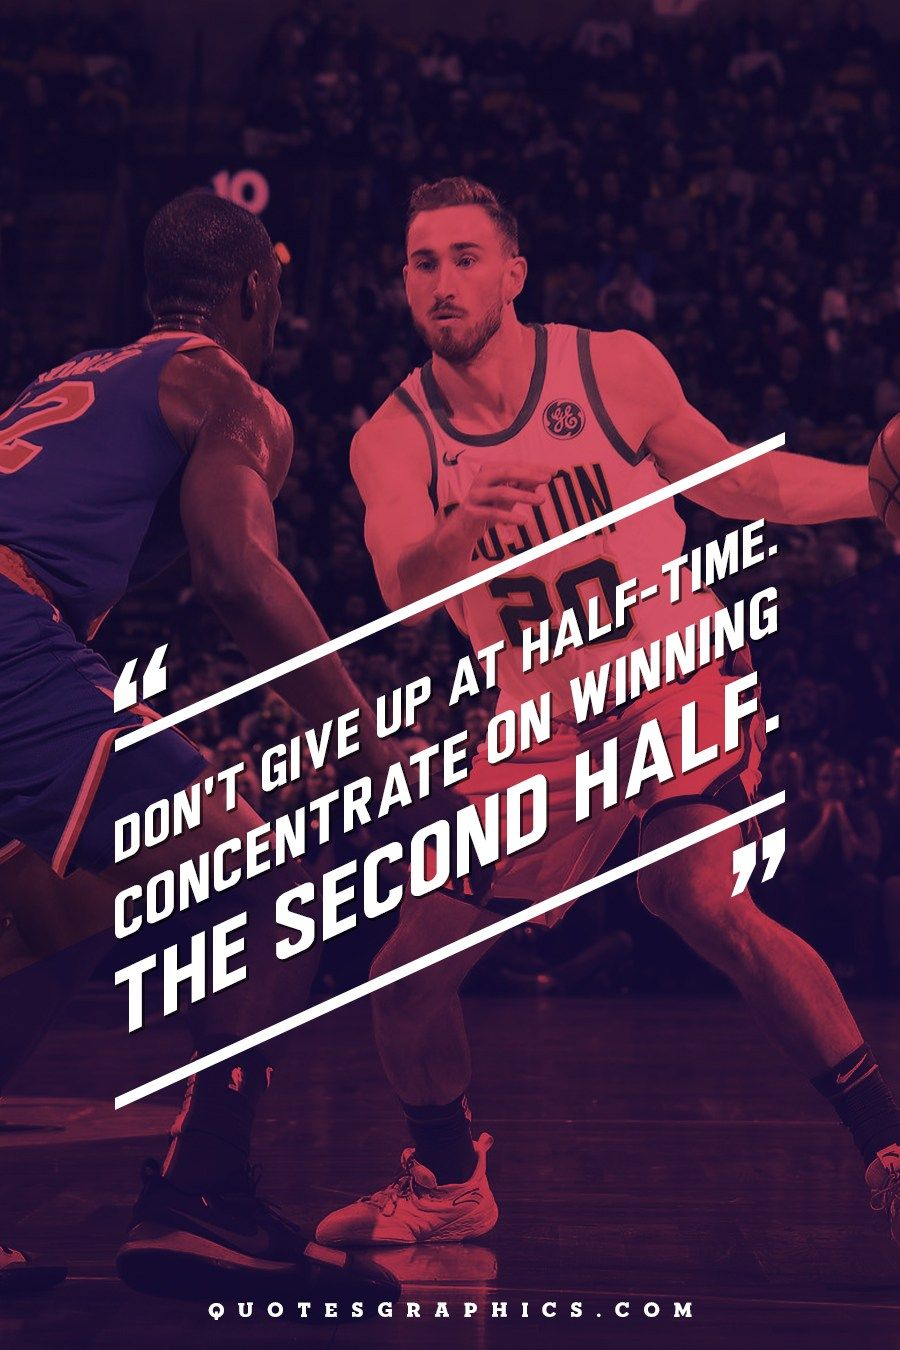 8. Don't give up at half-time. Concentrate on winning the second ...